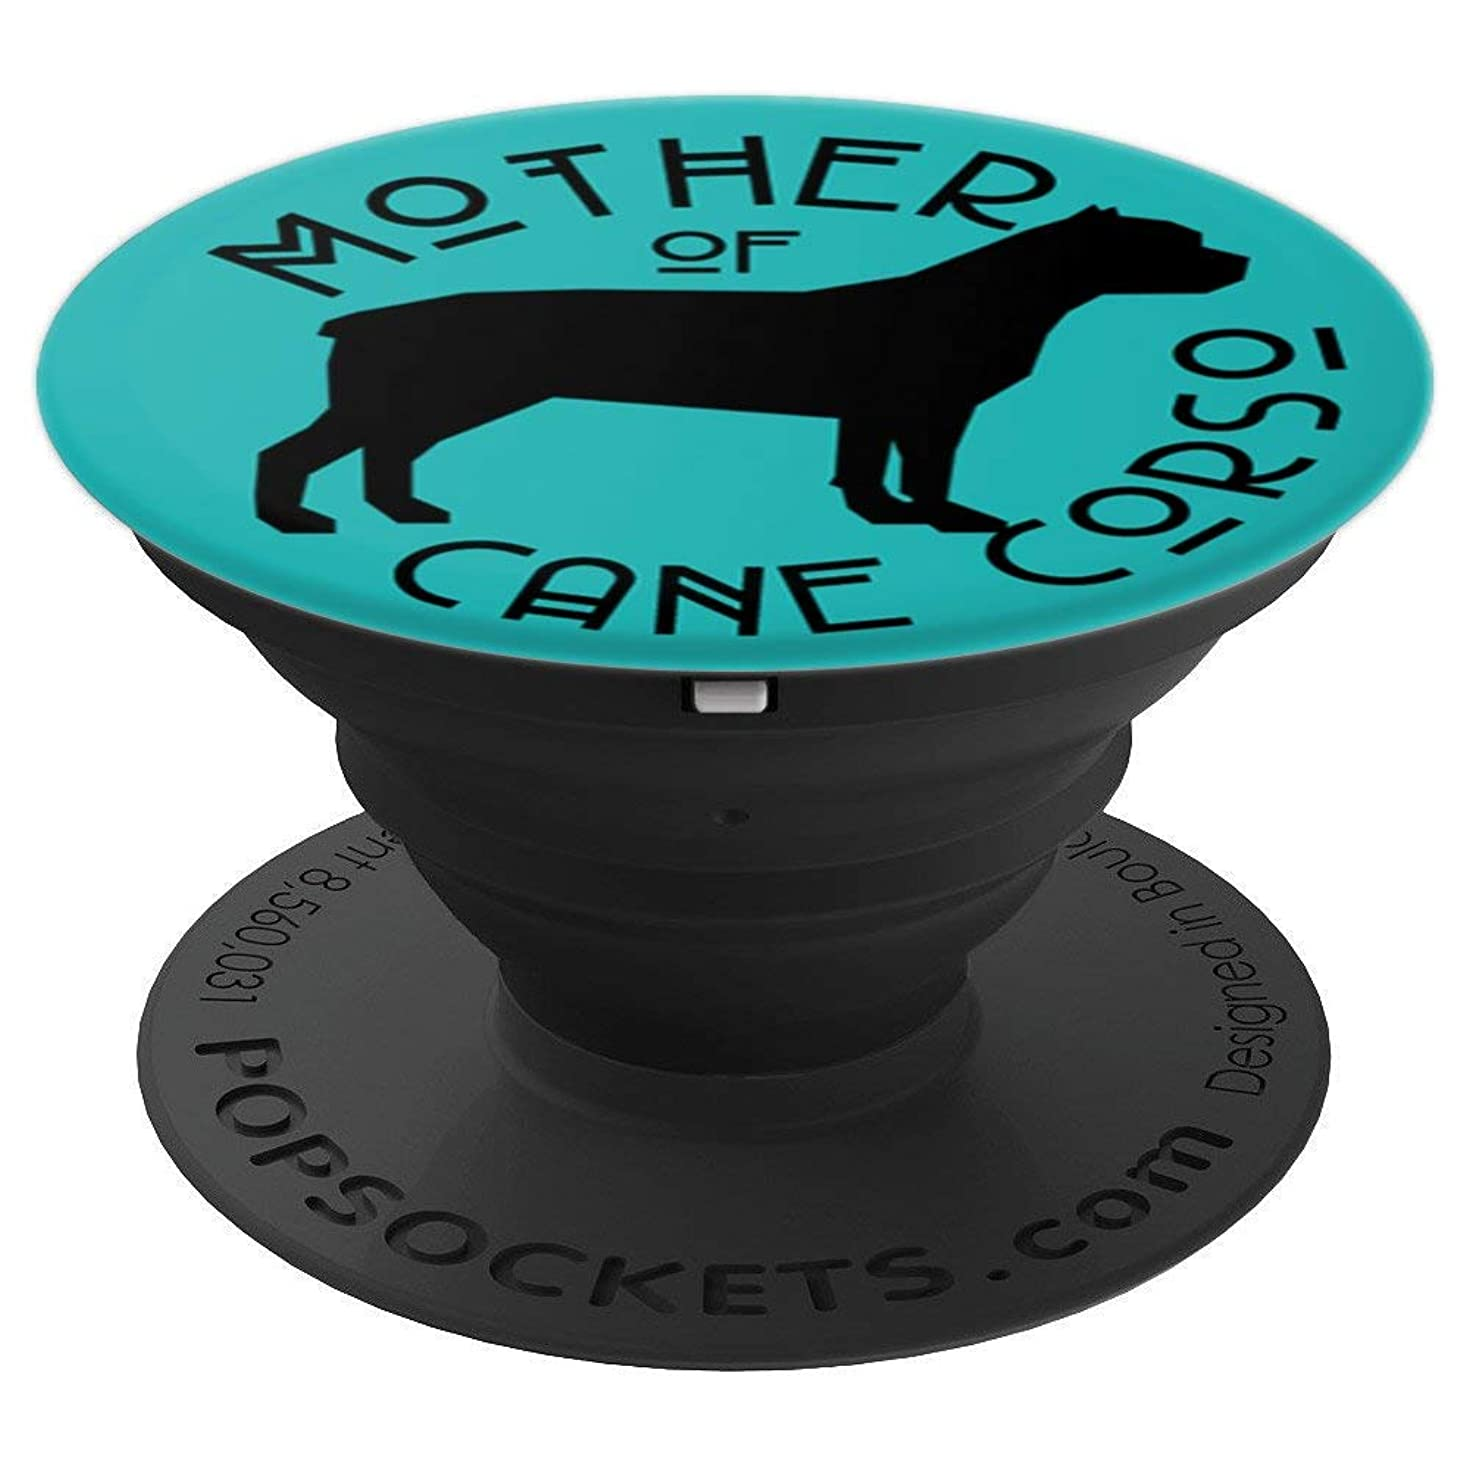 Mother of Cane Corso Cute Dog Lover Gift For Mom PACD223 - PopSockets Grip and Stand for Phones and Tablets